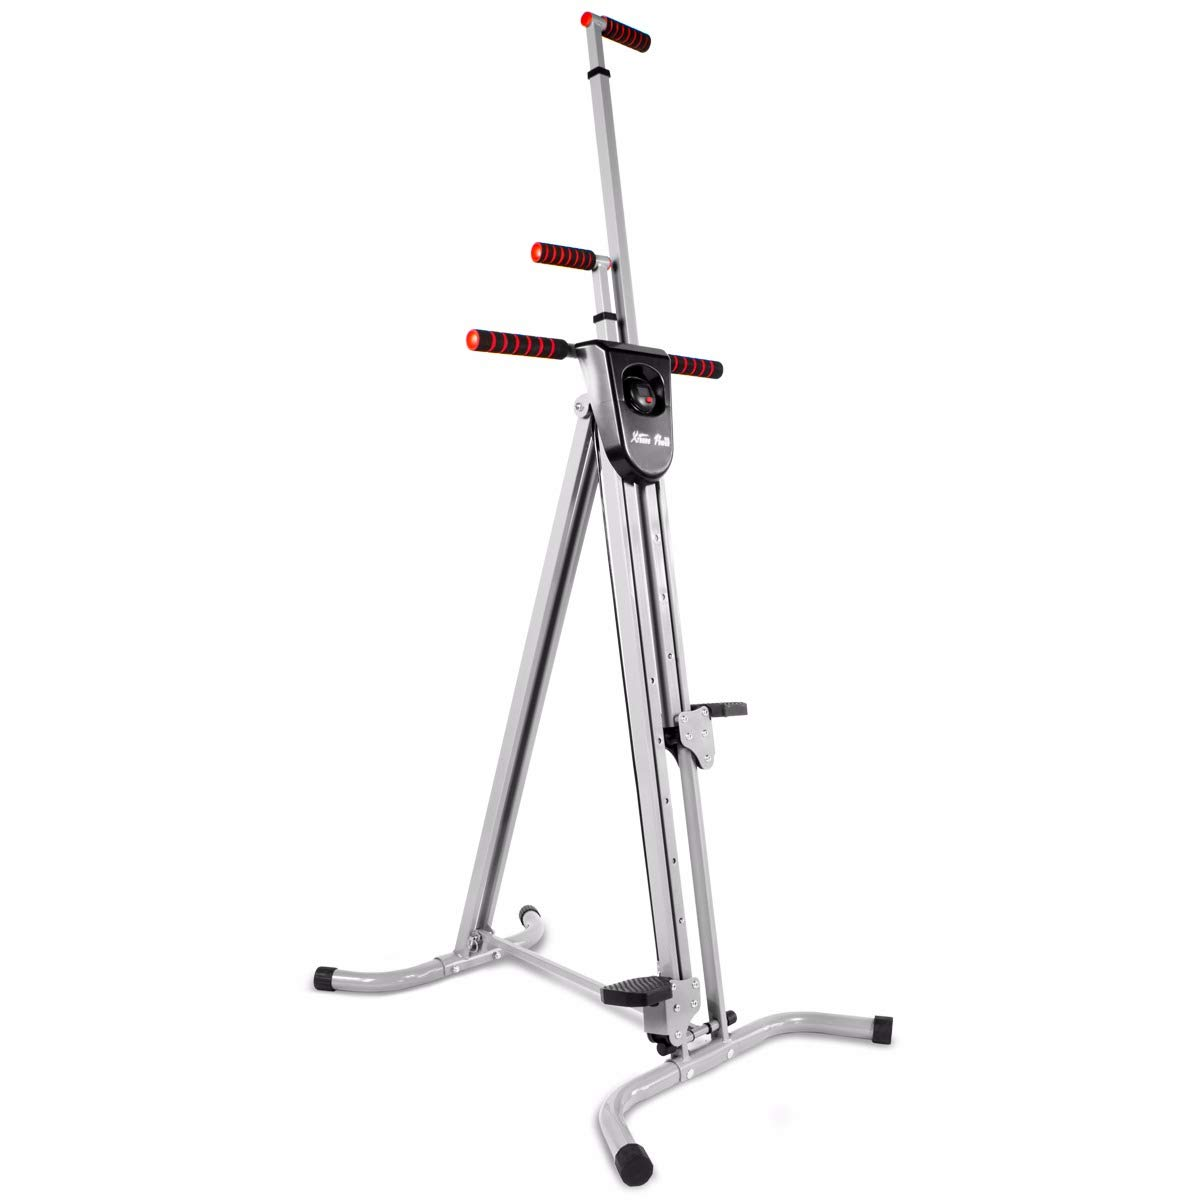 XtremepowerUS Vertical Climber Fitness Cardio Exercise Machine